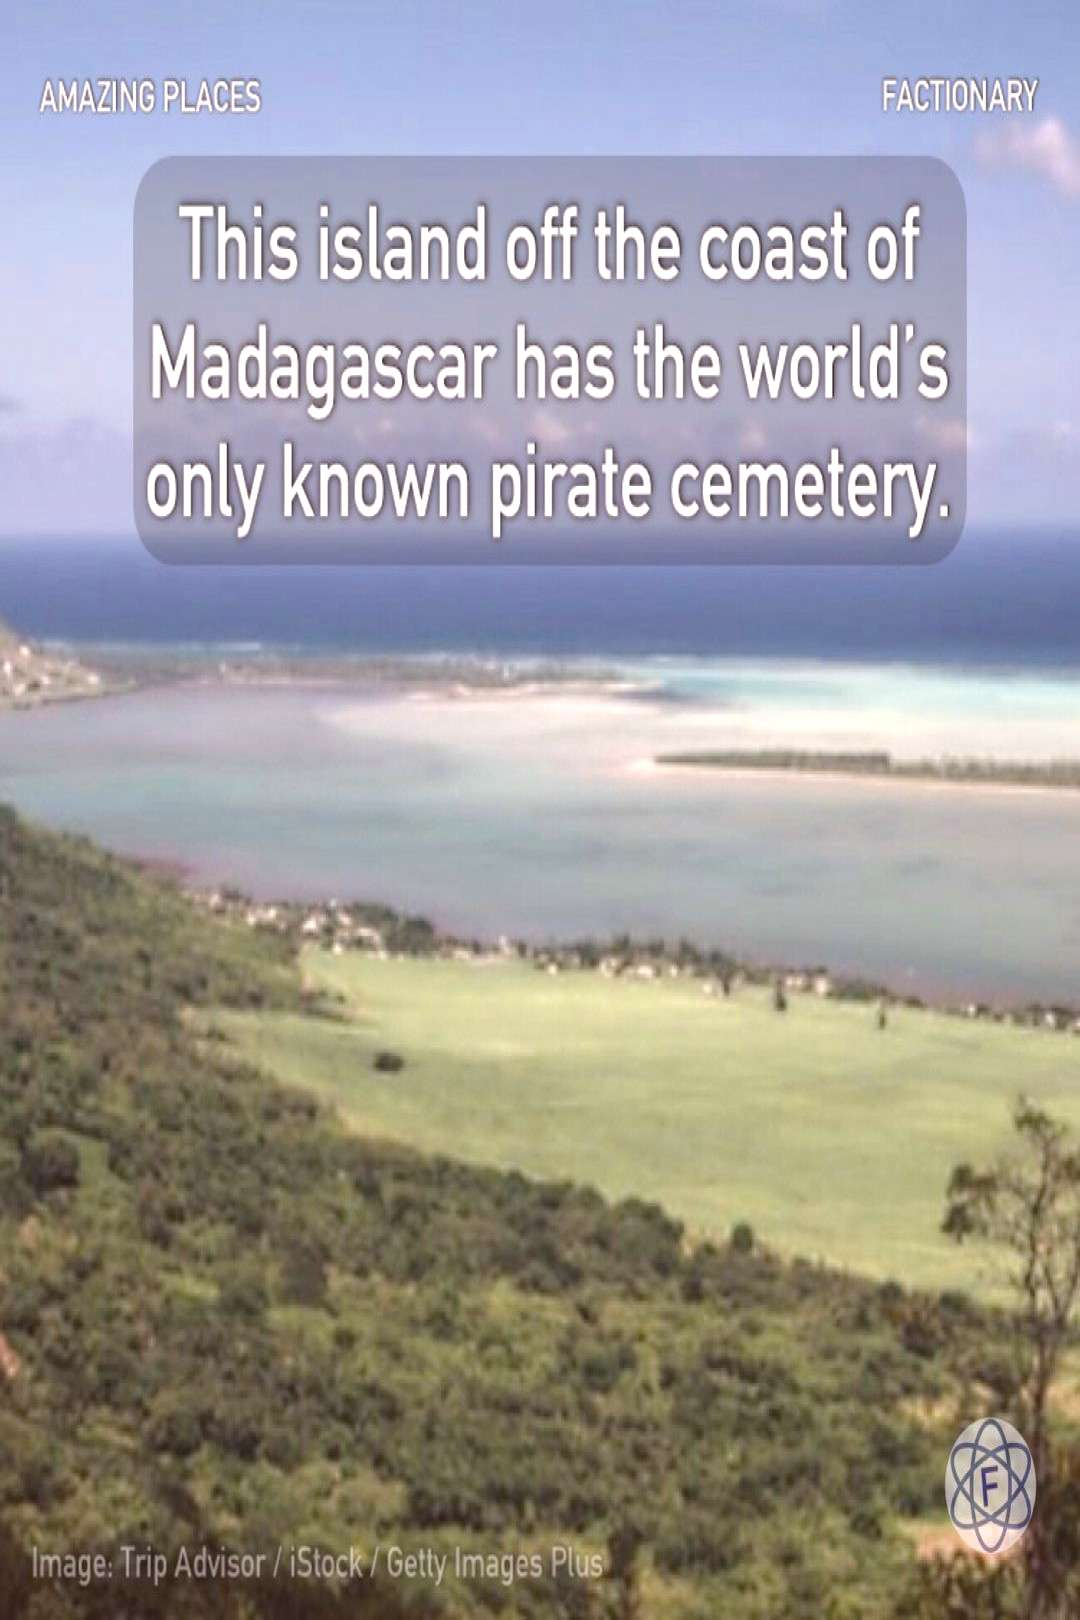 This island off the coast of Madagascar has the world's only known pirate cemetery.